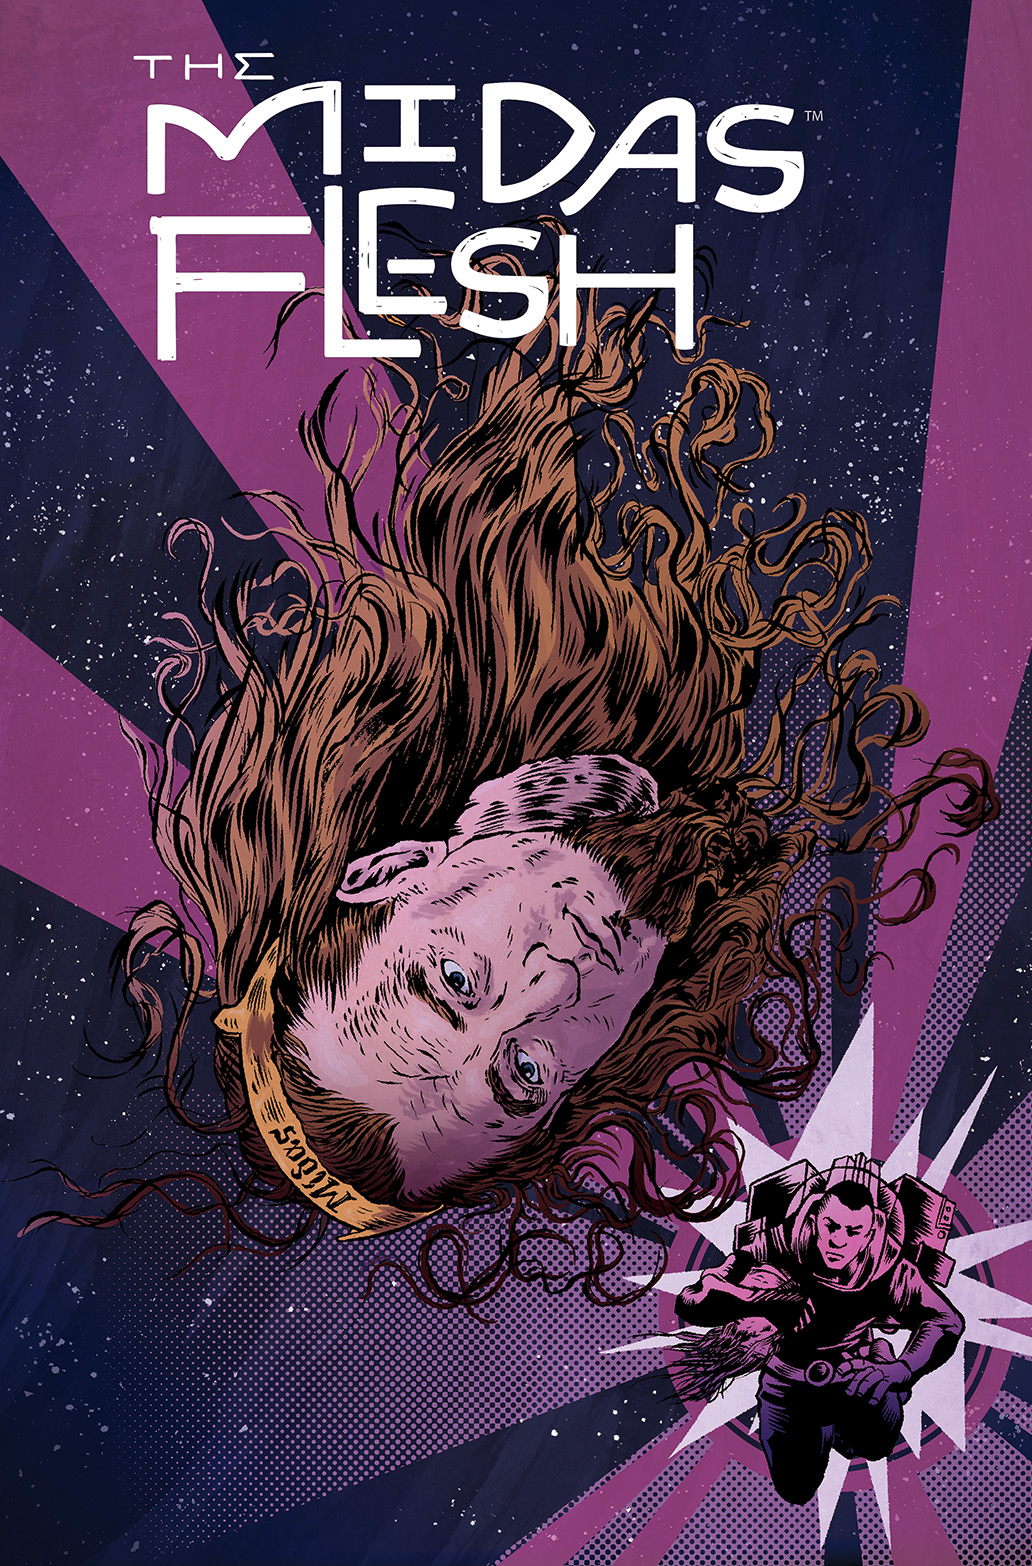 THE MIDAS FLESH #7 Cover A by John Keogh